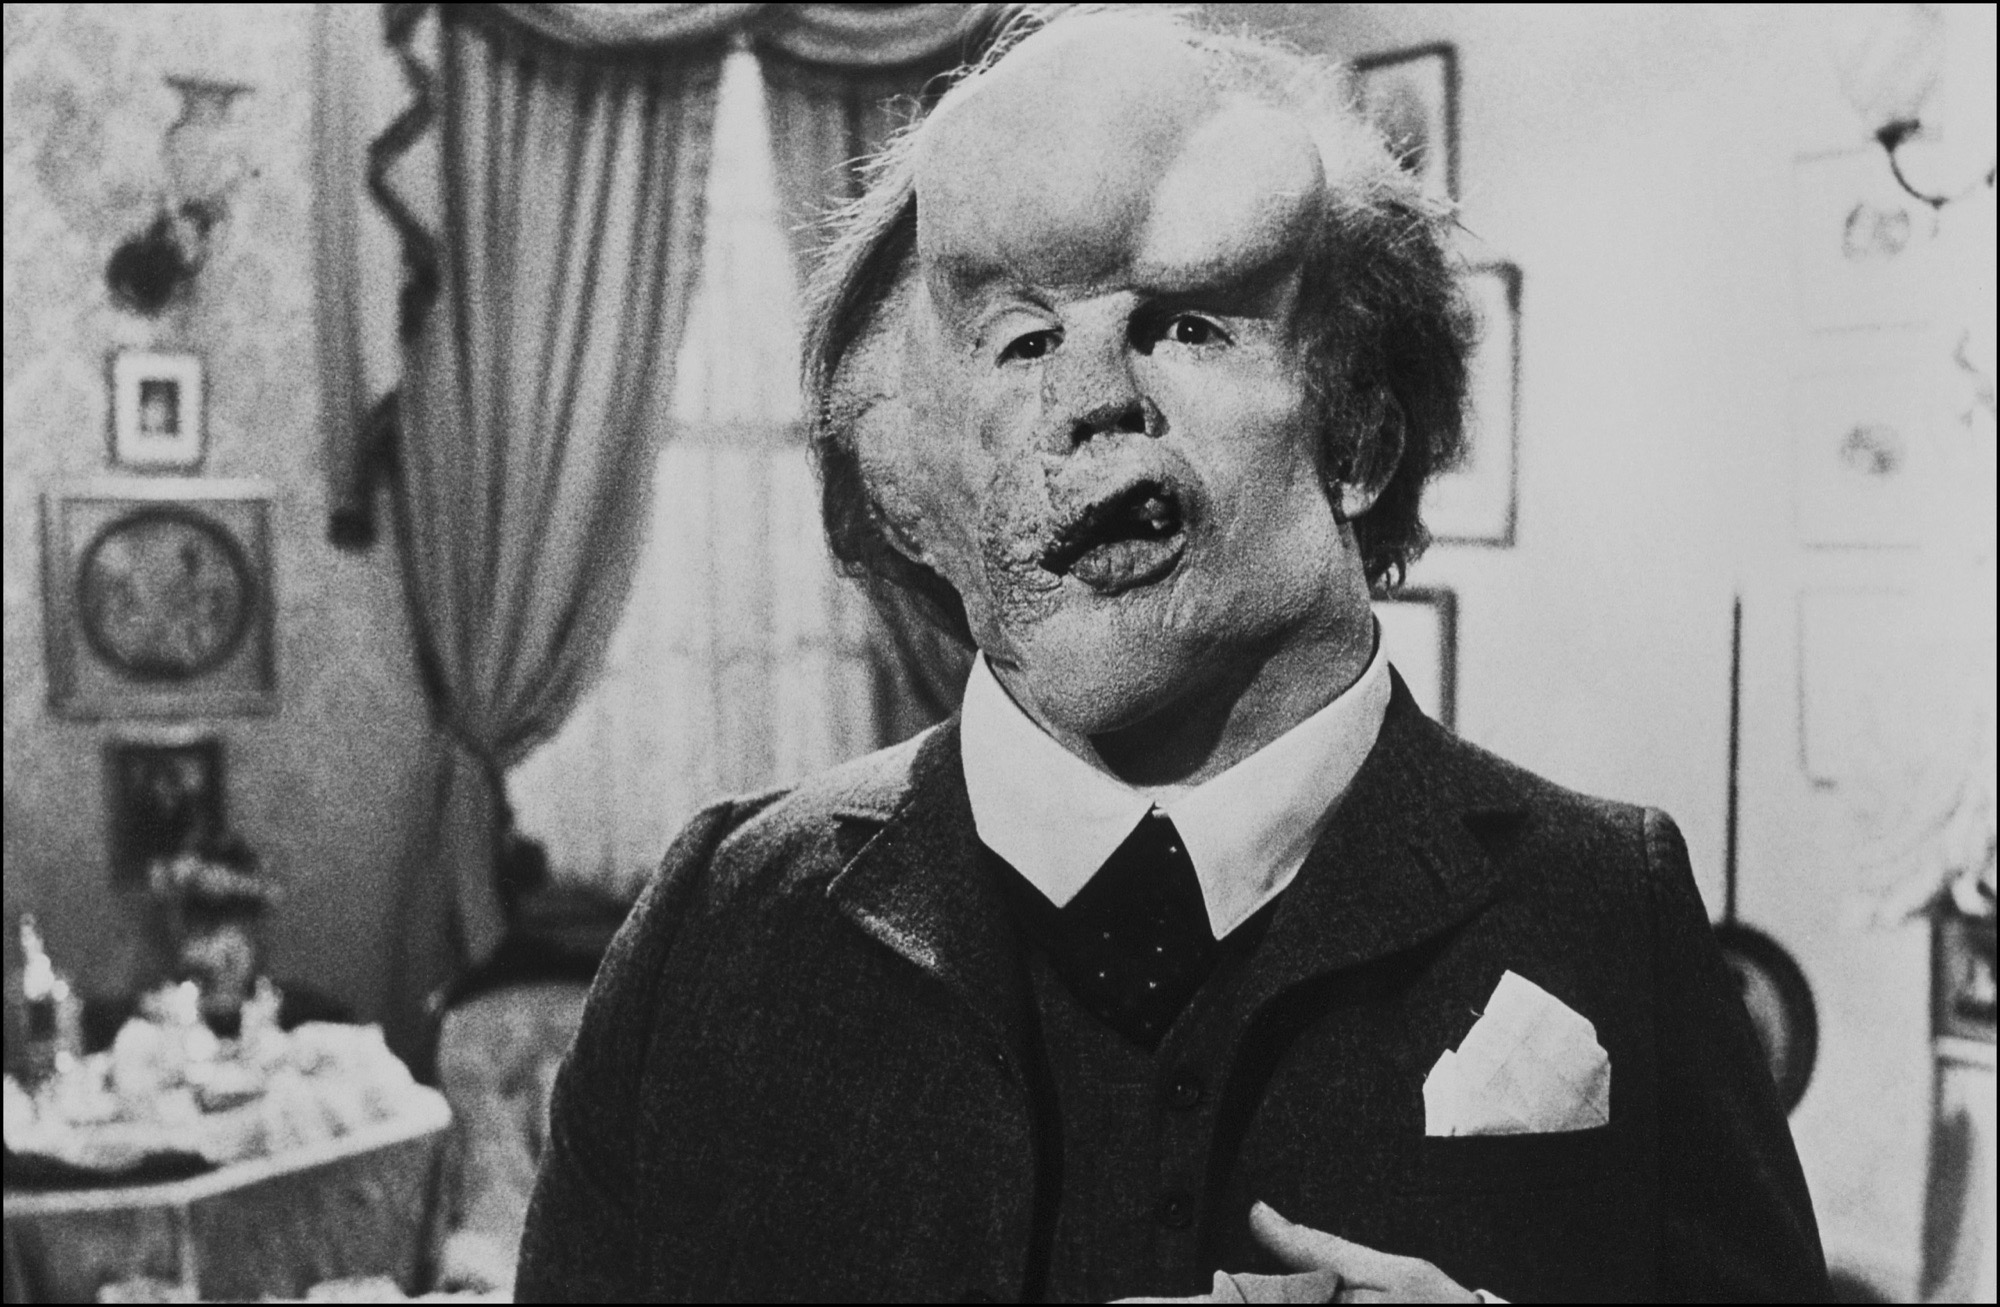 The Elephant Man compie 40 anni e torna al cinema: com'è nato il film di David Lynch